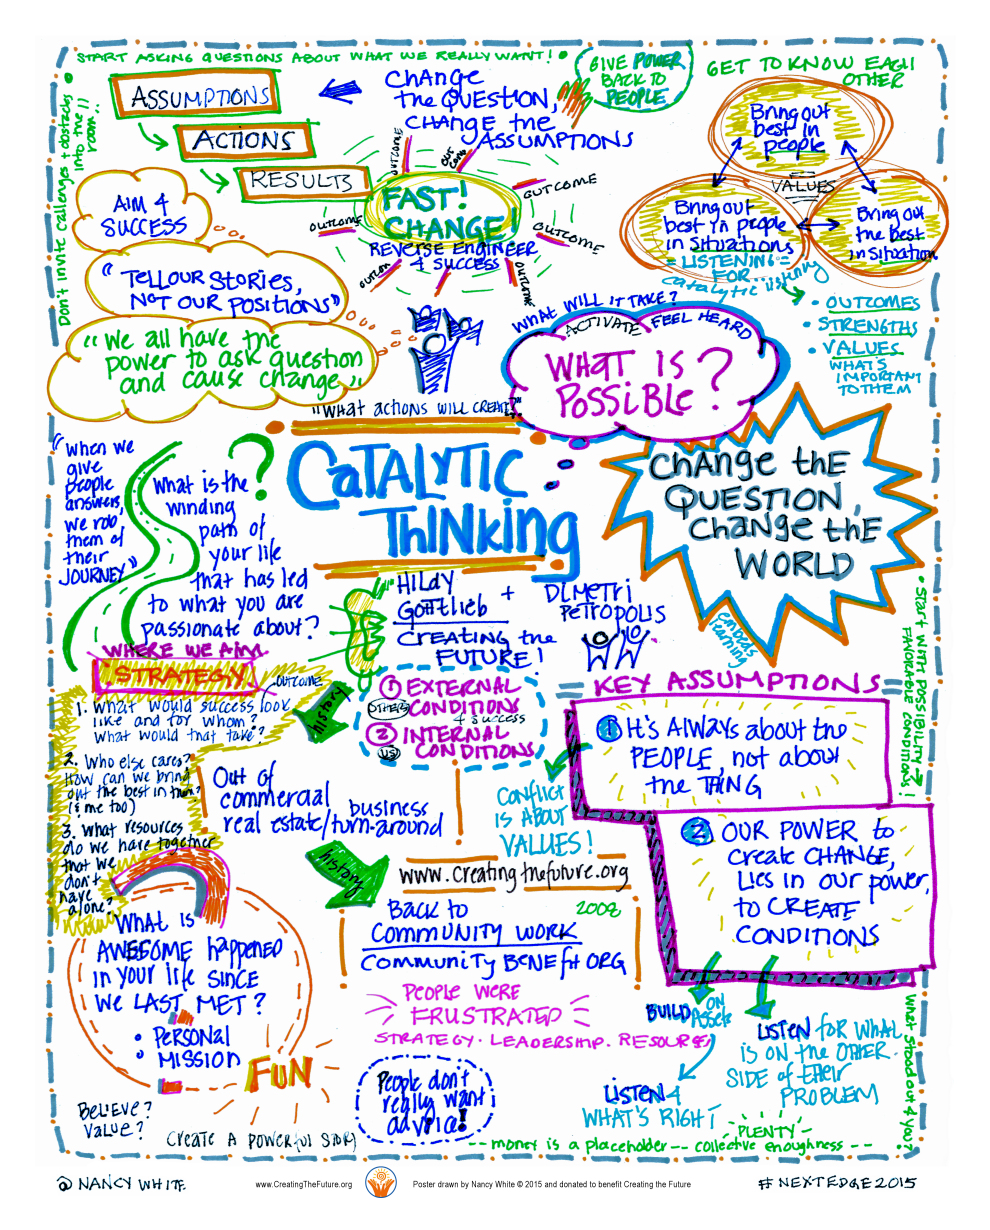 """CATALYTIC THINKING"" Poster -  Nancy White's amazing graphic notes from Hildy Gottlieb's  presentation on Catalytic Thinking at the 2015 Next Edge Festival in Montreal, Canada"